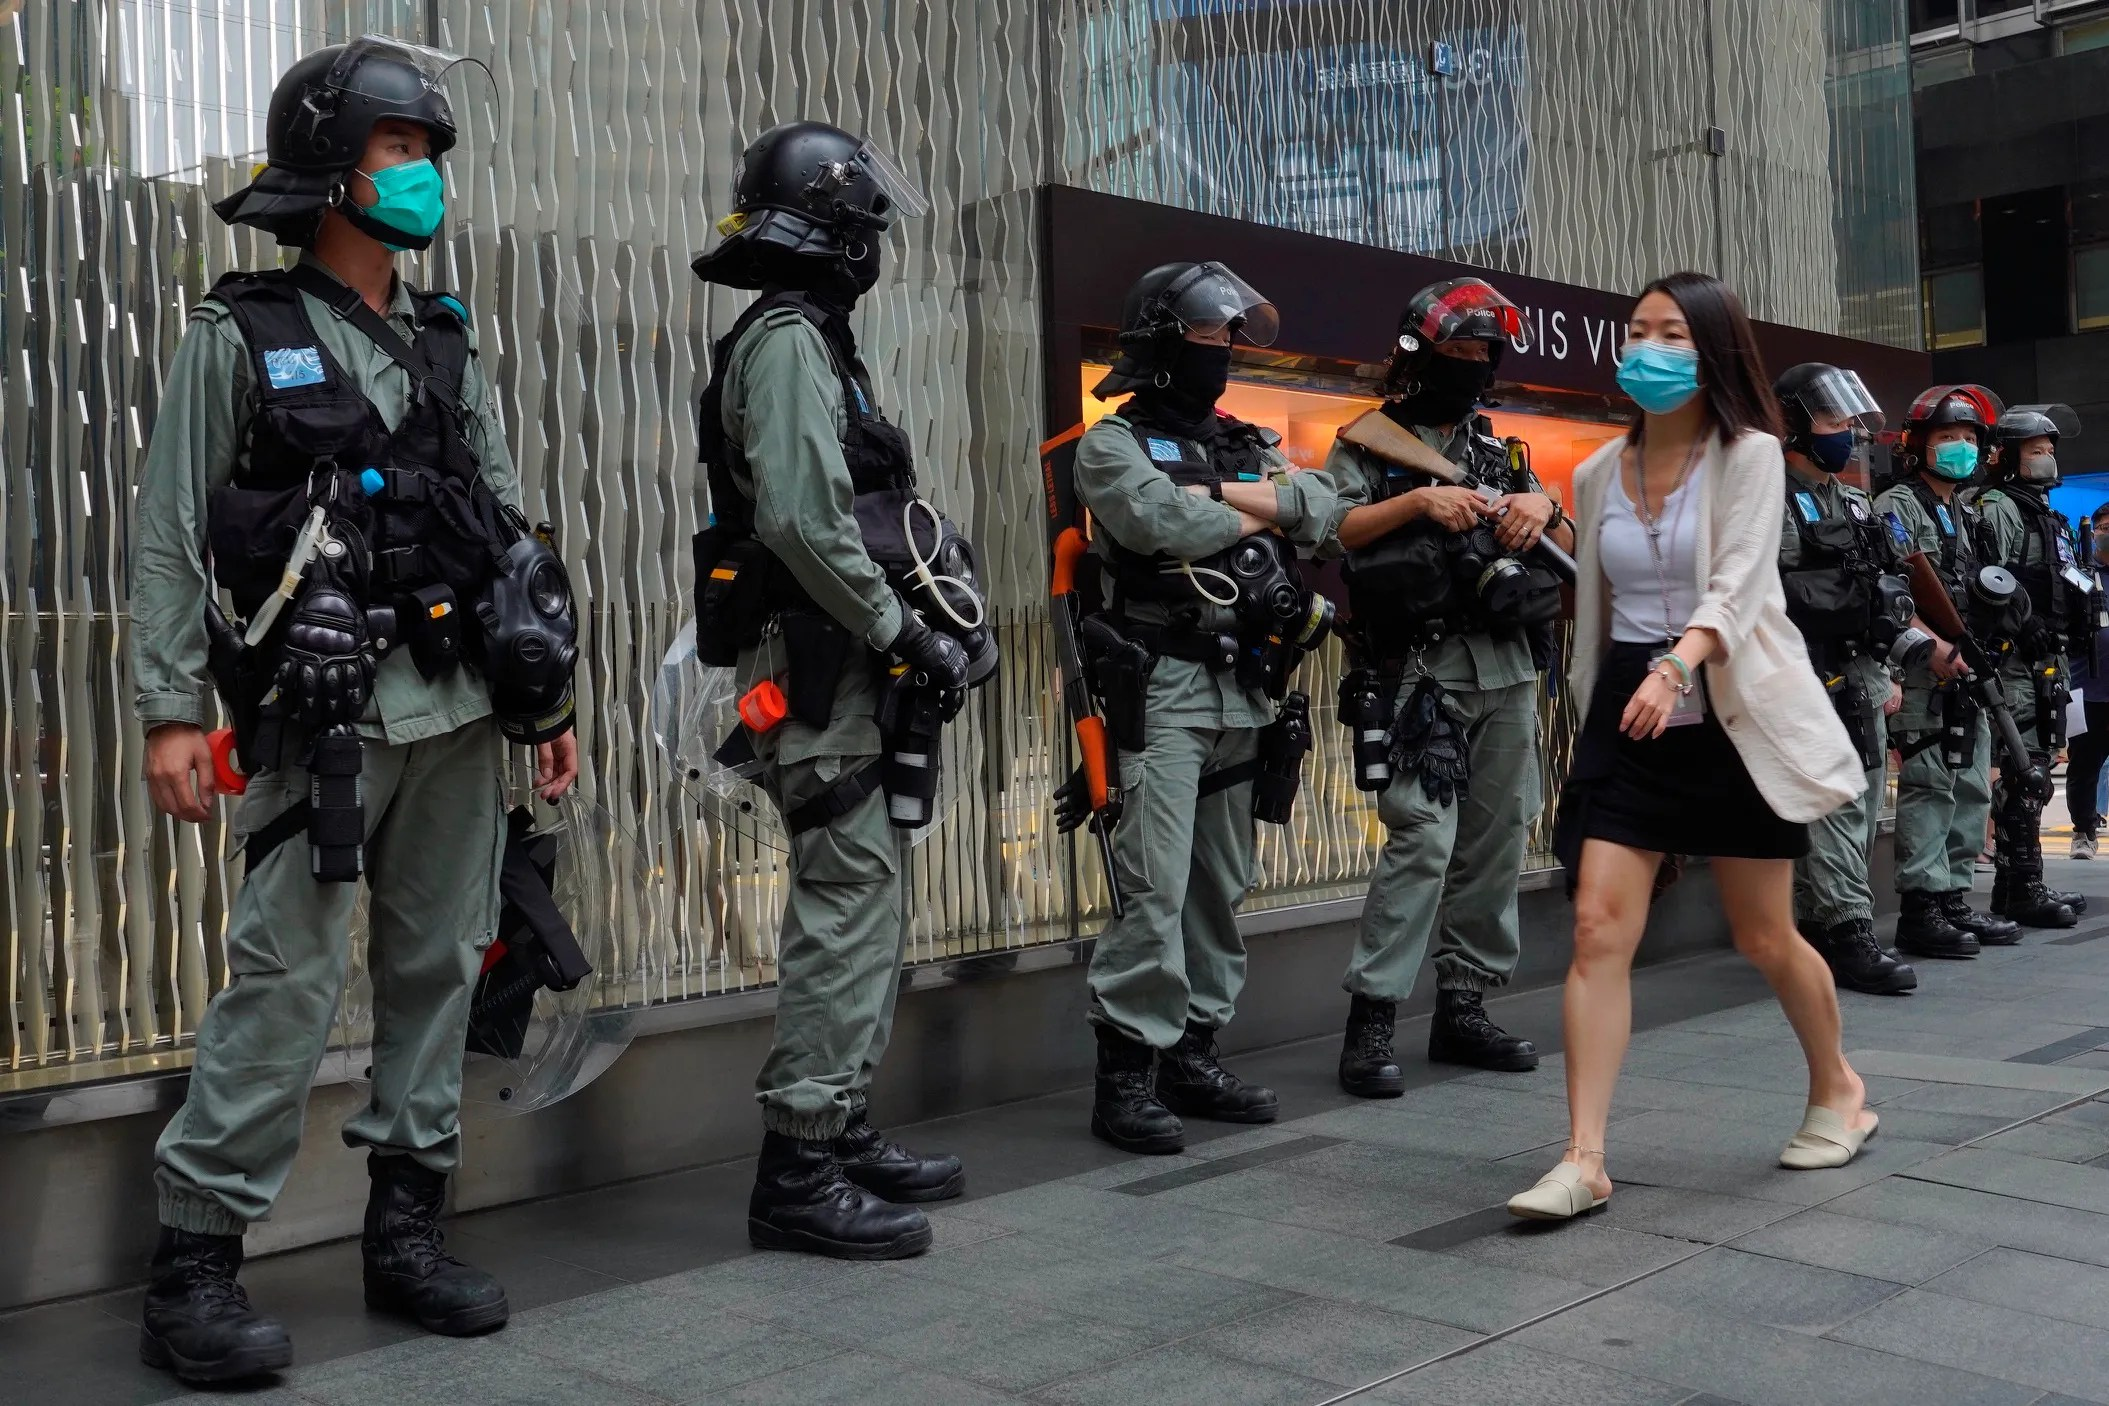 China Approves Contentious Hong Kong National Security